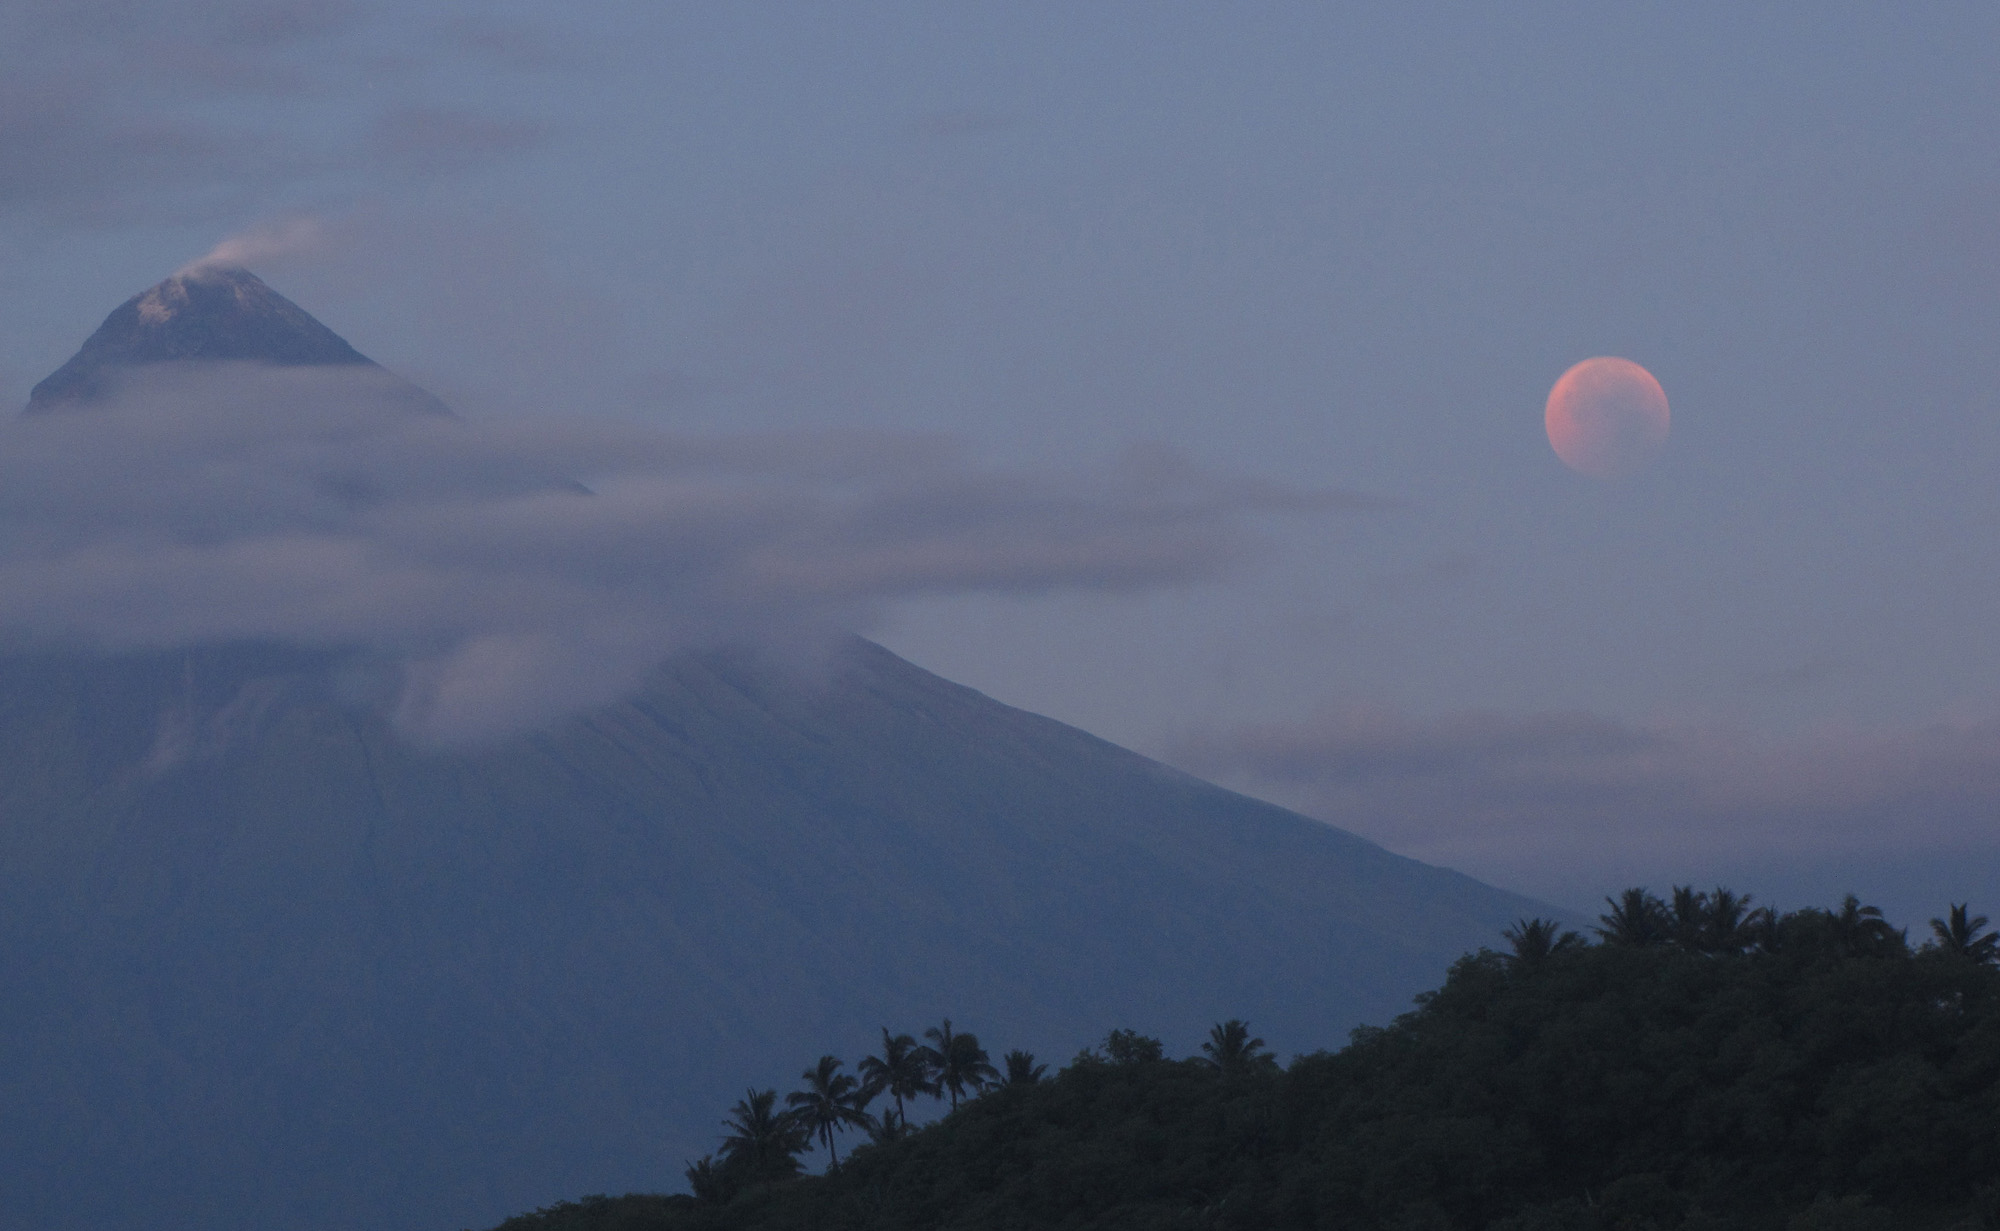 Total Lunar Eclipse and the Volcano